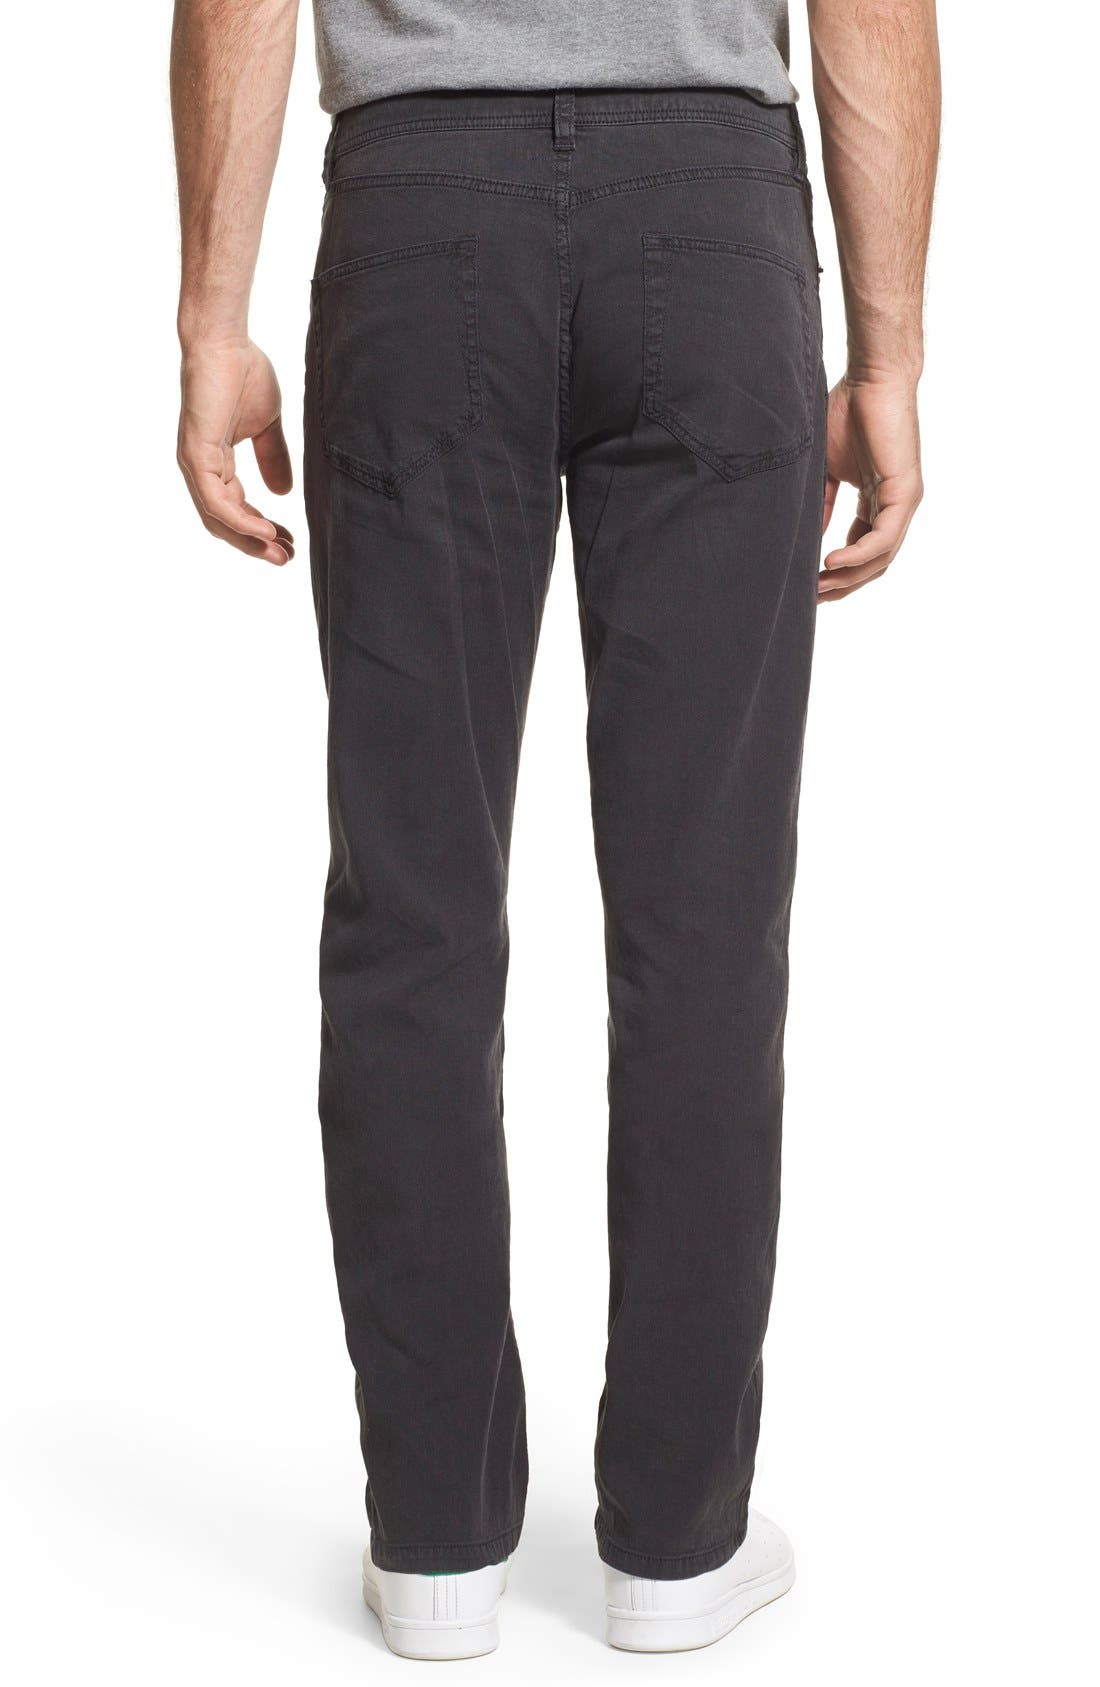 Straight Leg Five-Pocket Pants,                             Alternate thumbnail 8, color,                             CARBON PIGMENT